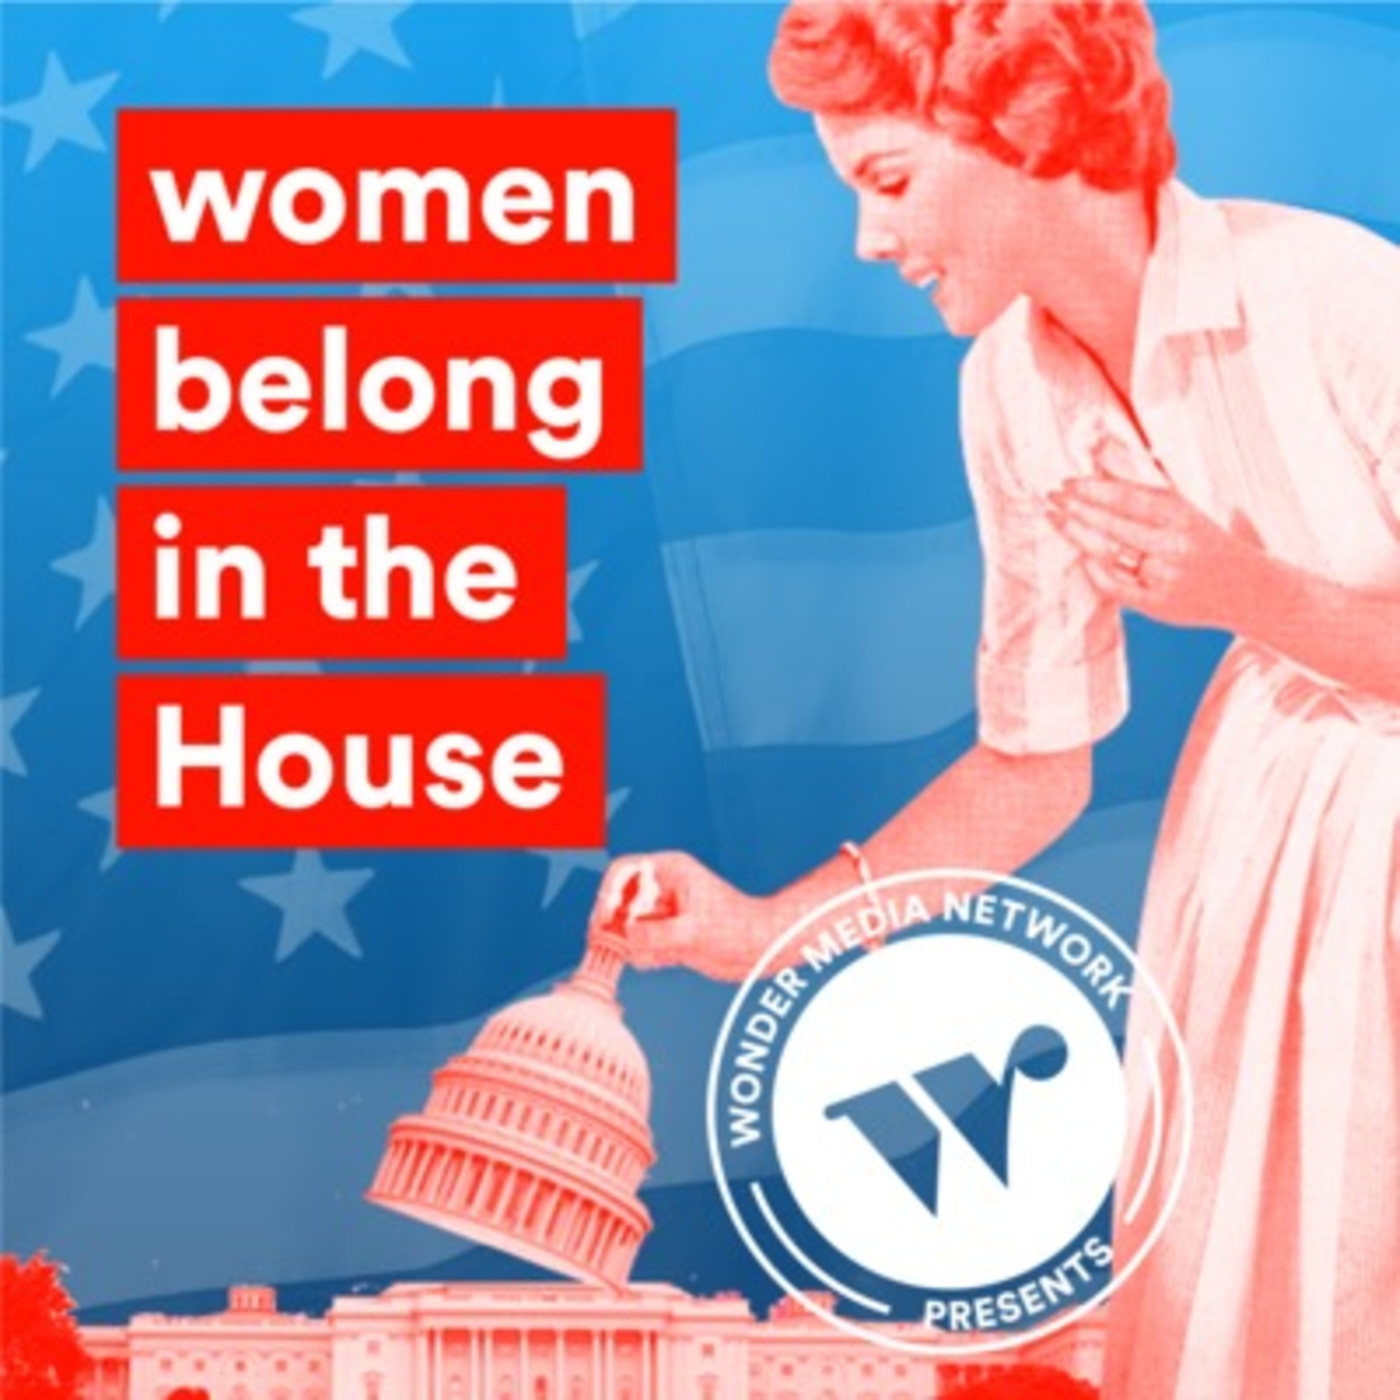 Introducing: Web of WMN